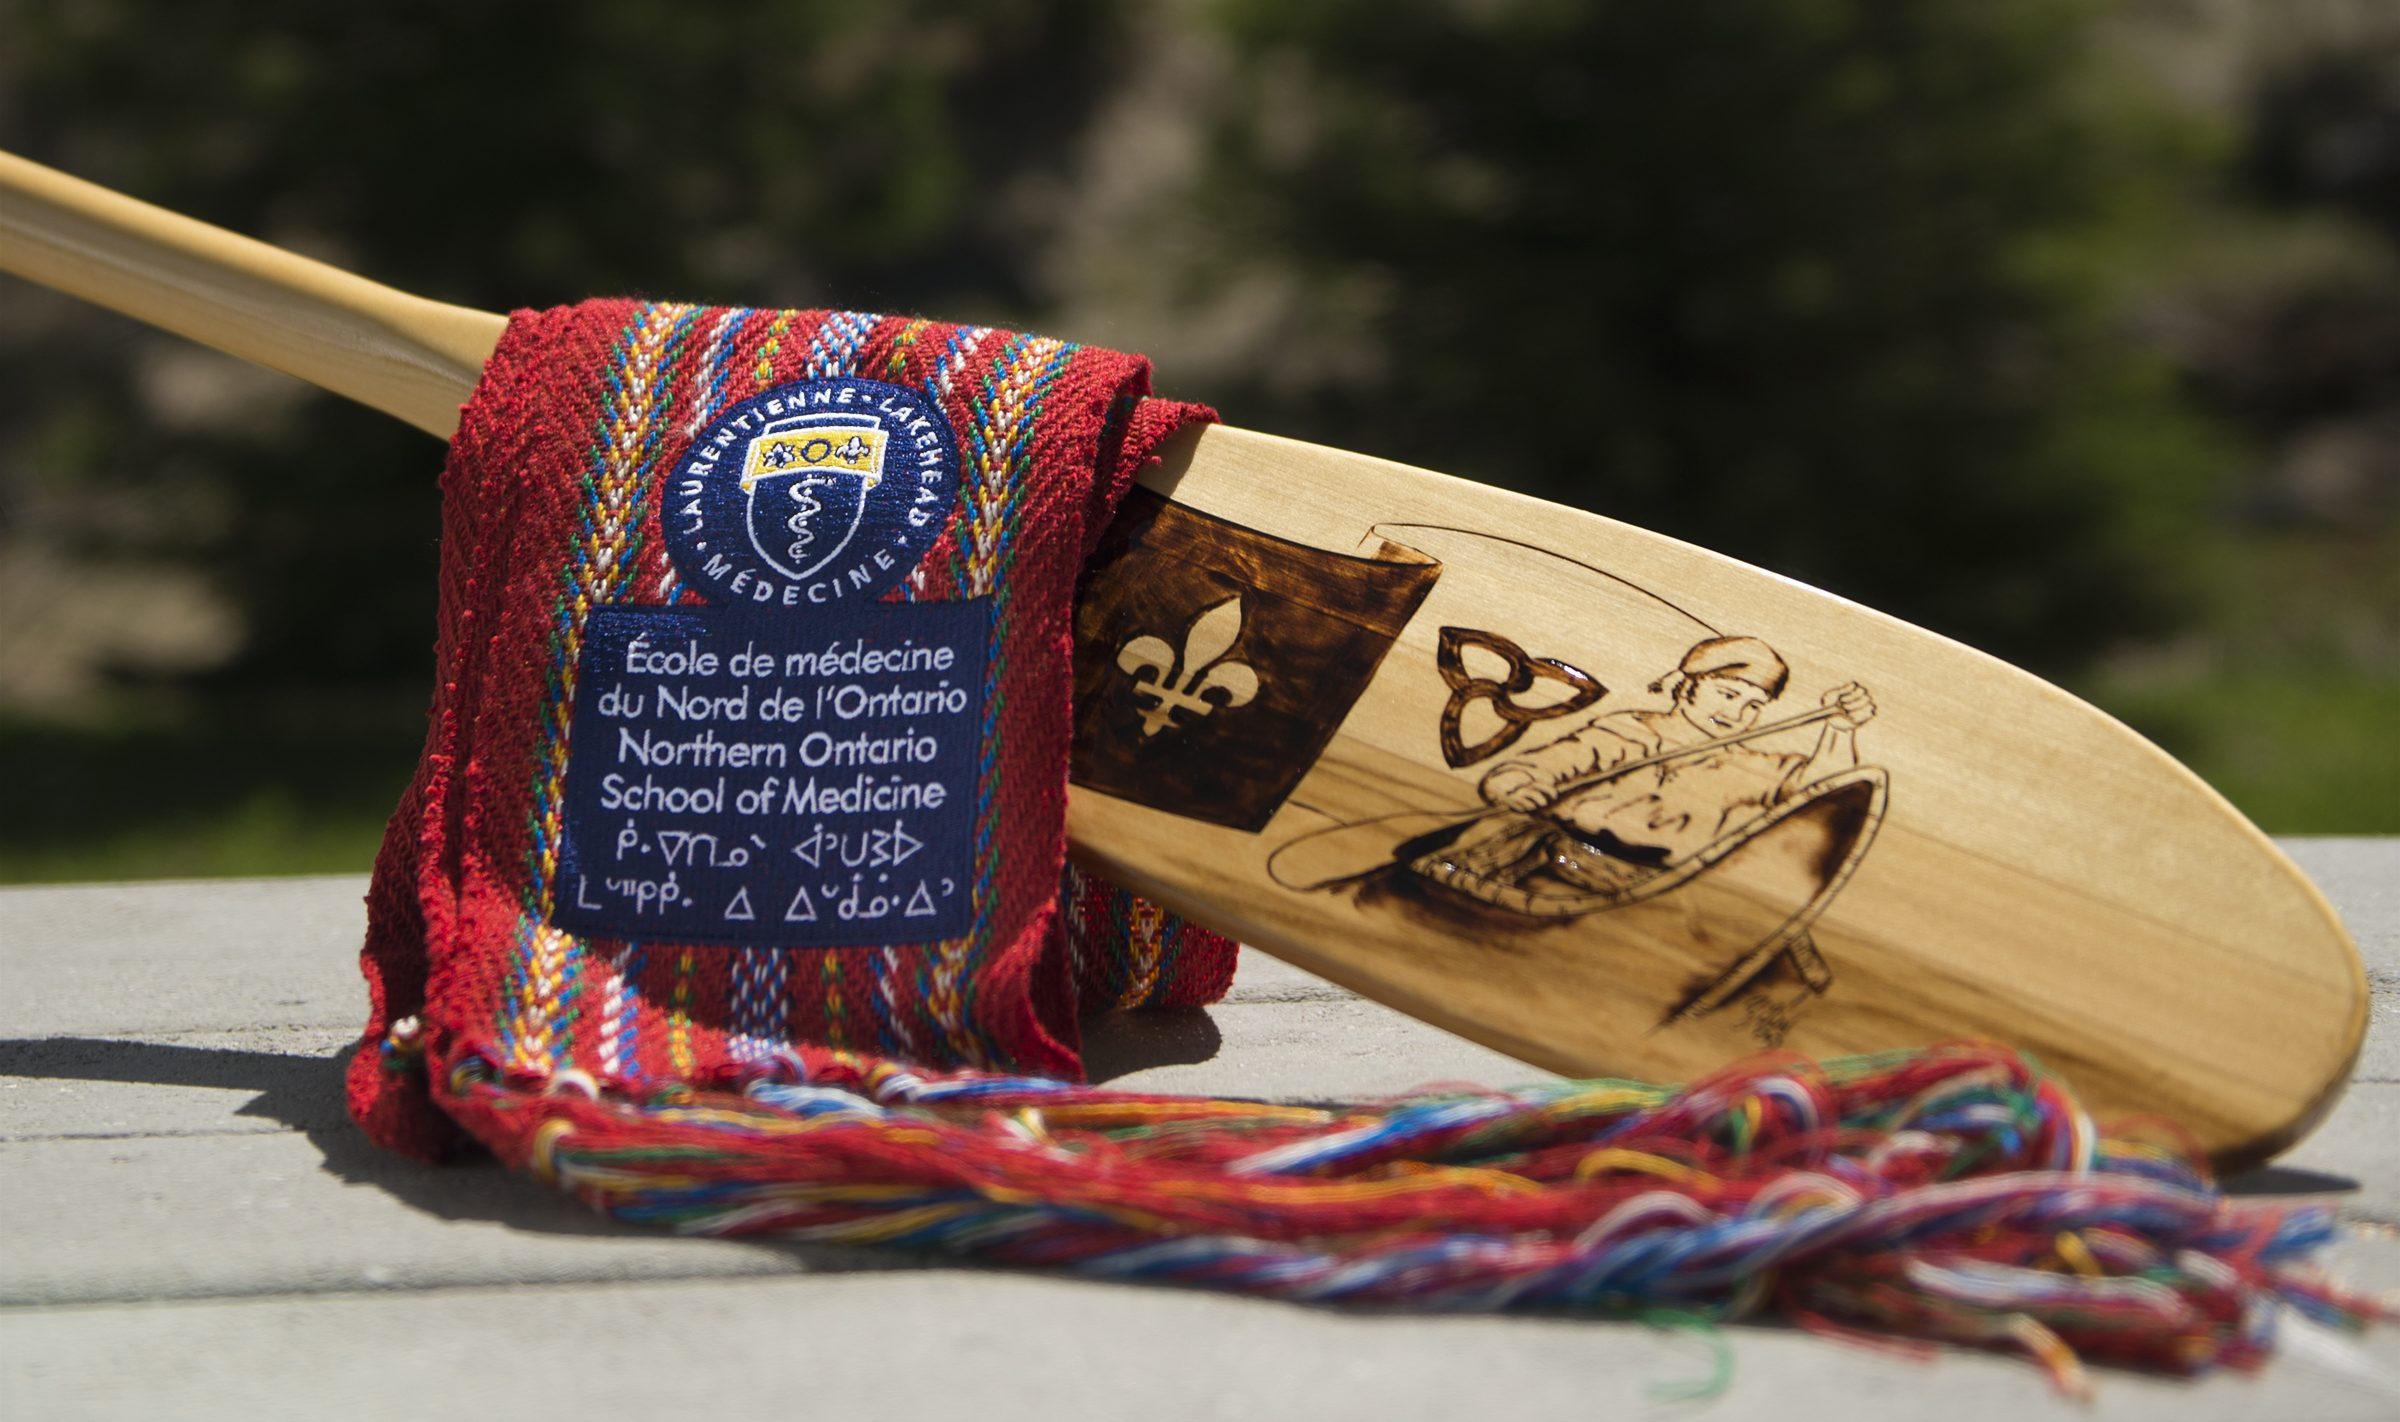 Photo of voyageur sash and wooden oar.